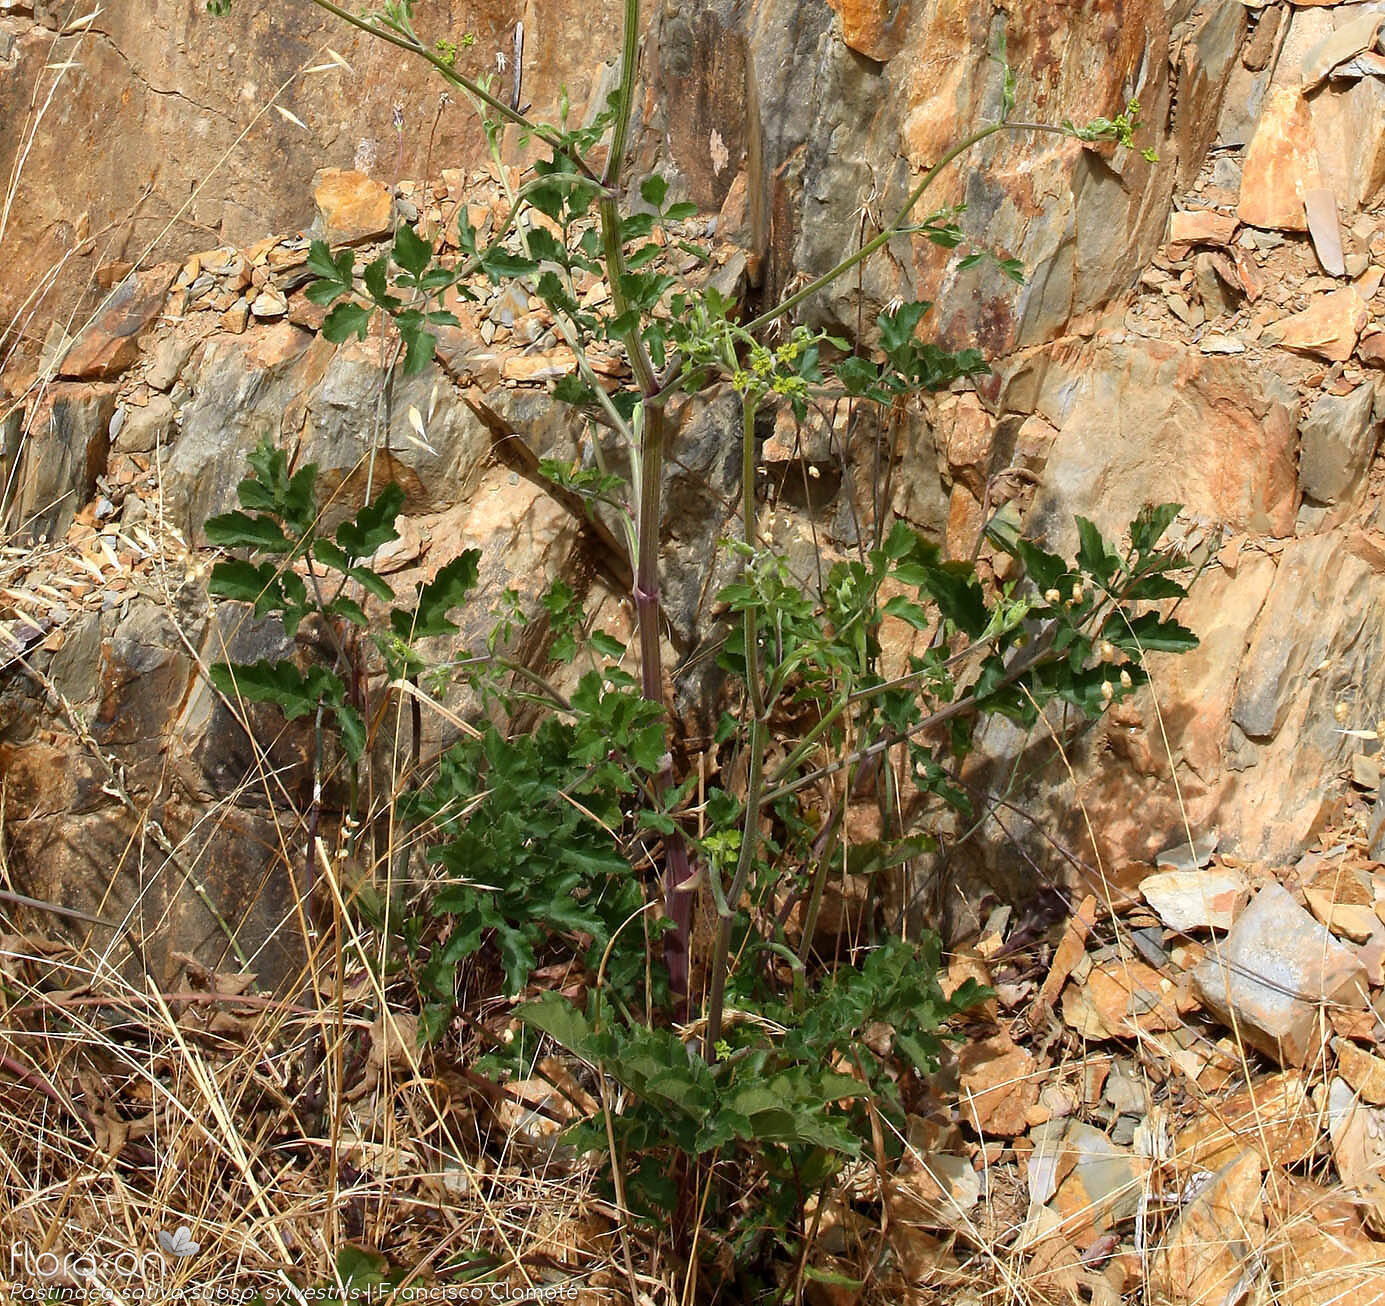 Pastinaca sativa sylvestris - Folha (geral) | Francisco Clamote; CC BY-NC 4.0